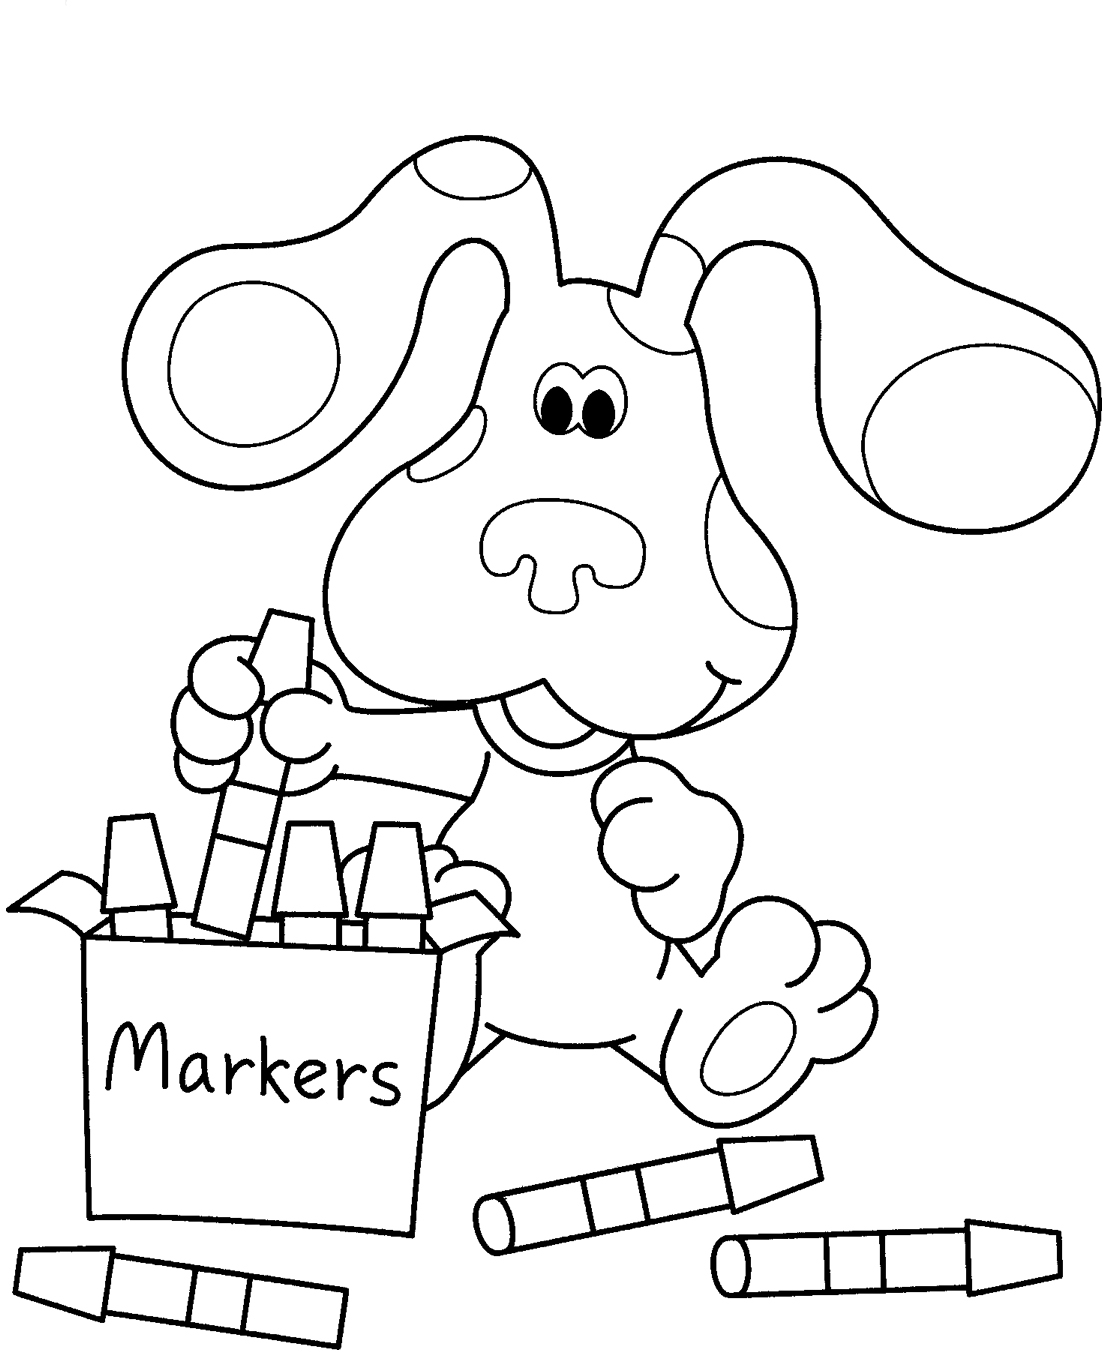 1115x1356 Nickelodeon Coloring Pages Nickelodeon Coloring Pages Coloring